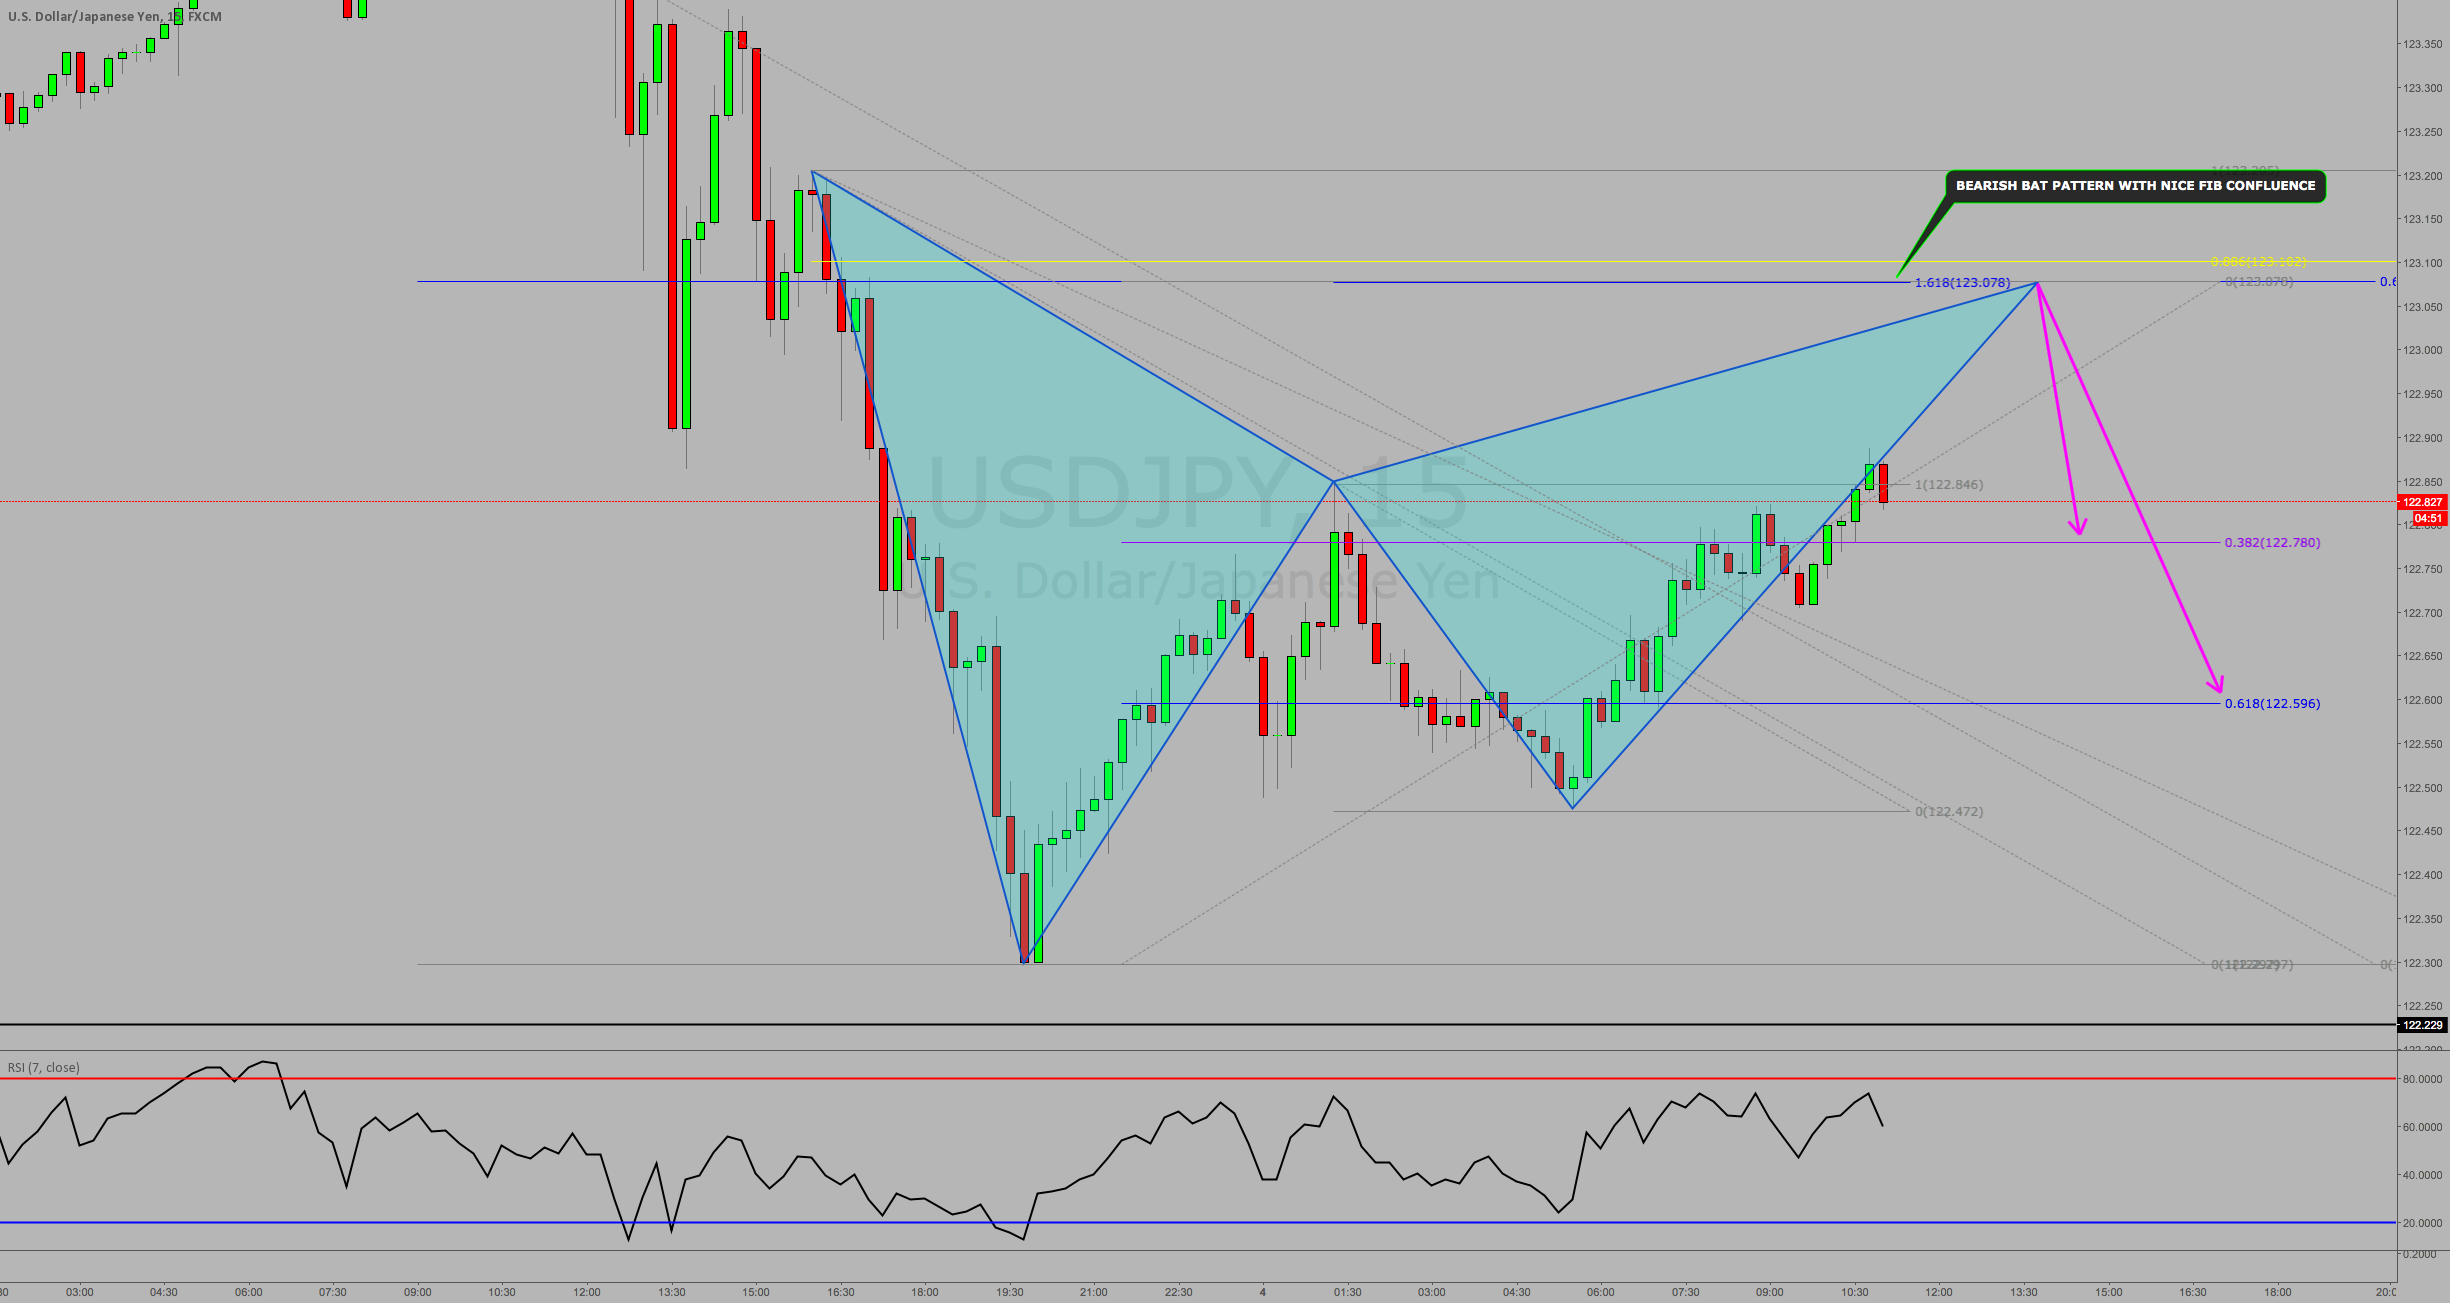 USDJPY: BEARISH BAT PATTERN WITH BEAUTIFUL FIBONACCI CONFLUENCE